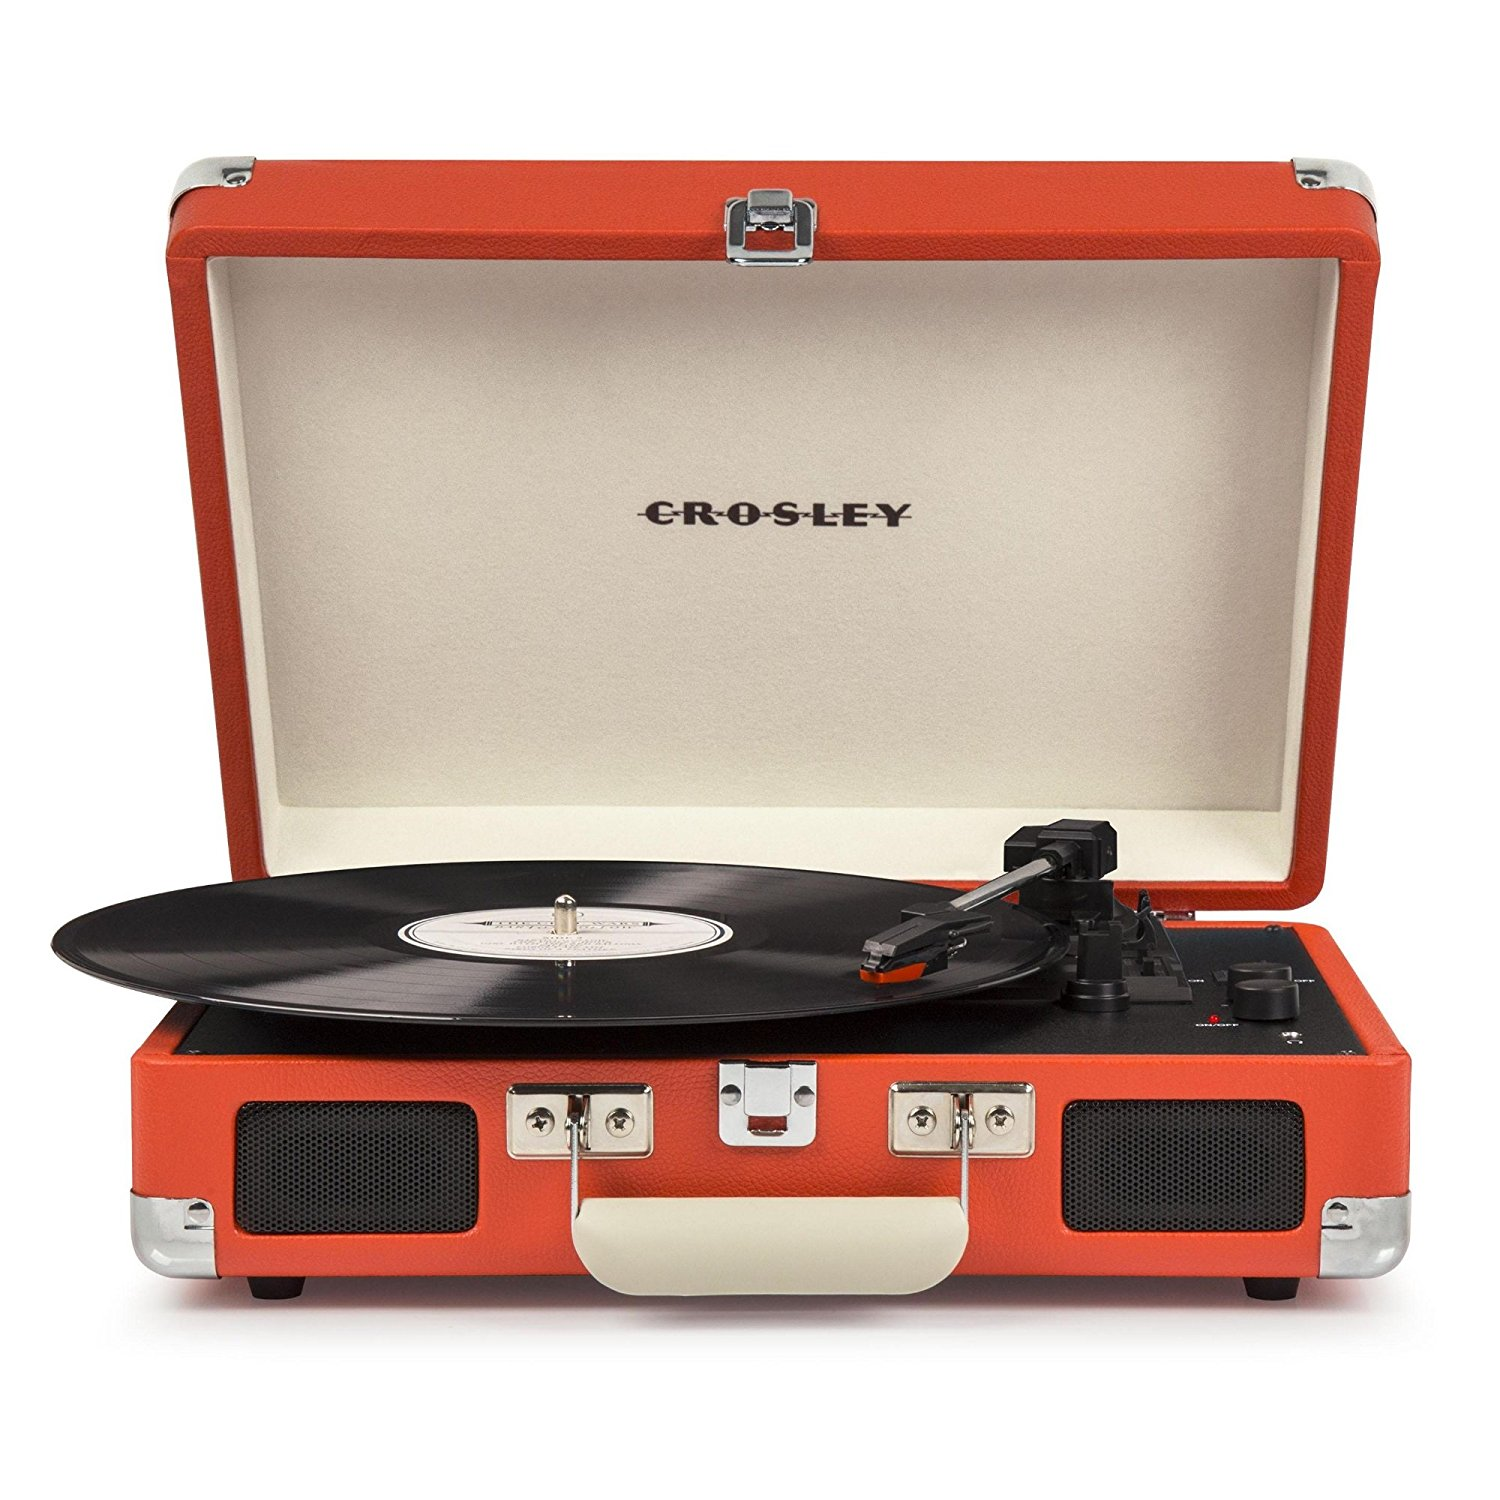 Crosley Cruise record player